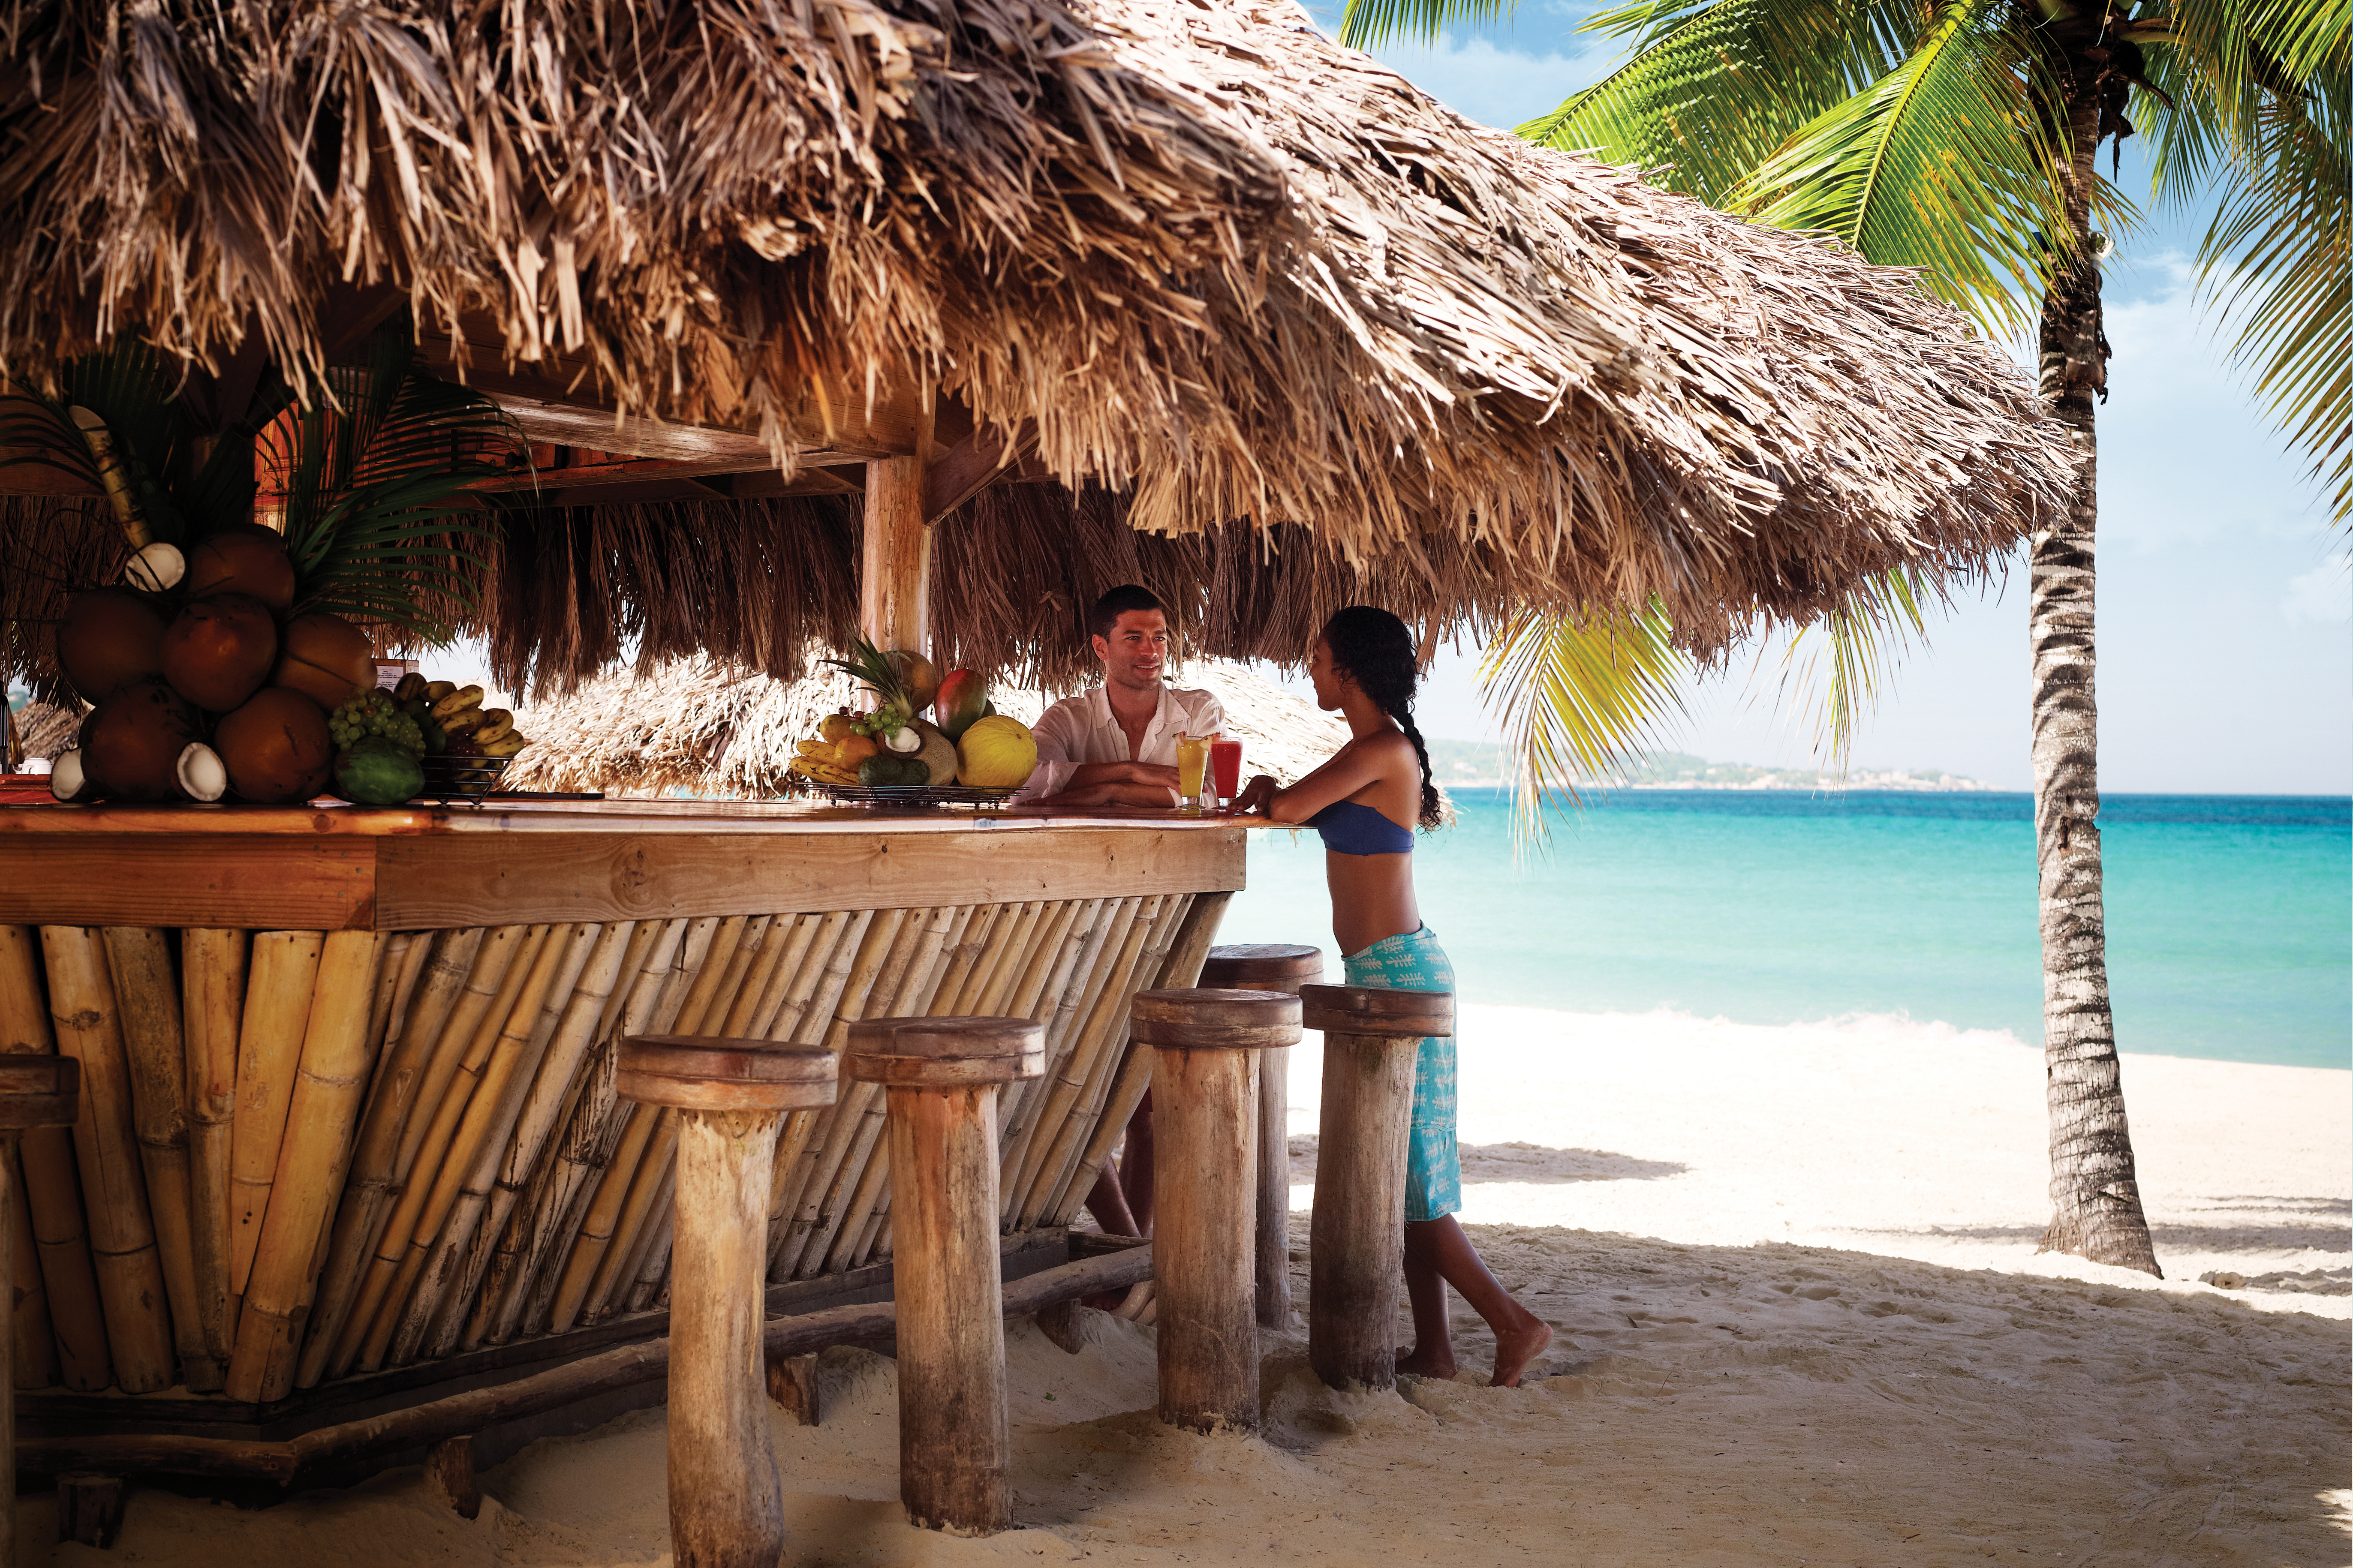 Travel Agency All-Inclusive Resort Couples Swept Away 57